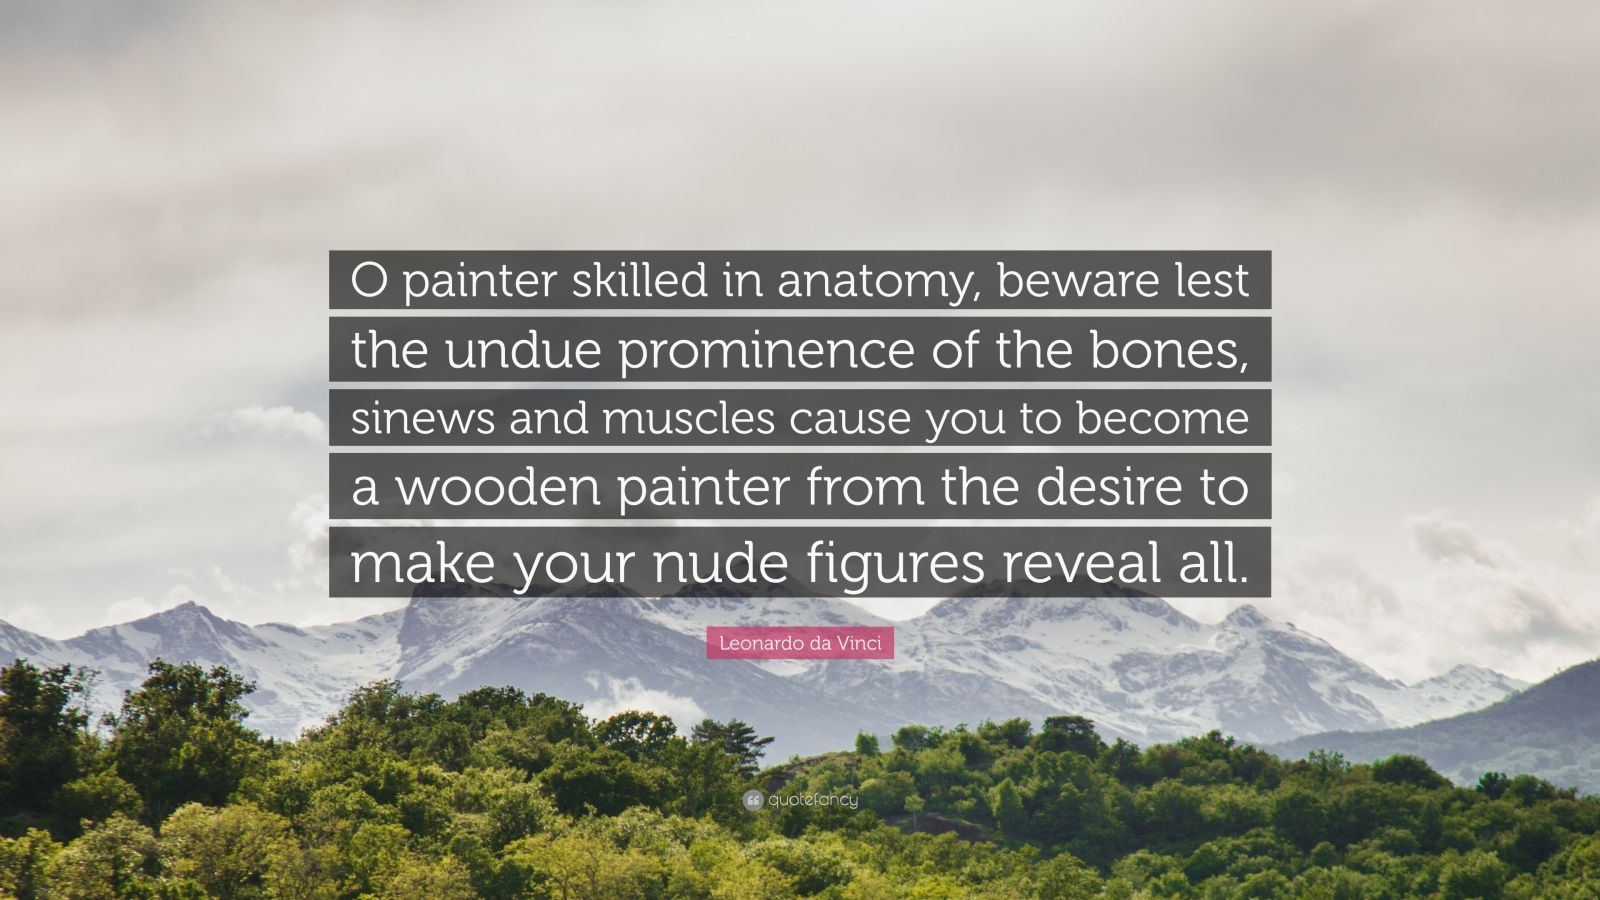 """Leonardo da Vinci Quote: """"O painter skilled in anatomy, beware lest the undue prominence of the bones, sinews and muscles cause you to become a wooden painter from the desire to make your nude figures reveal all."""""""